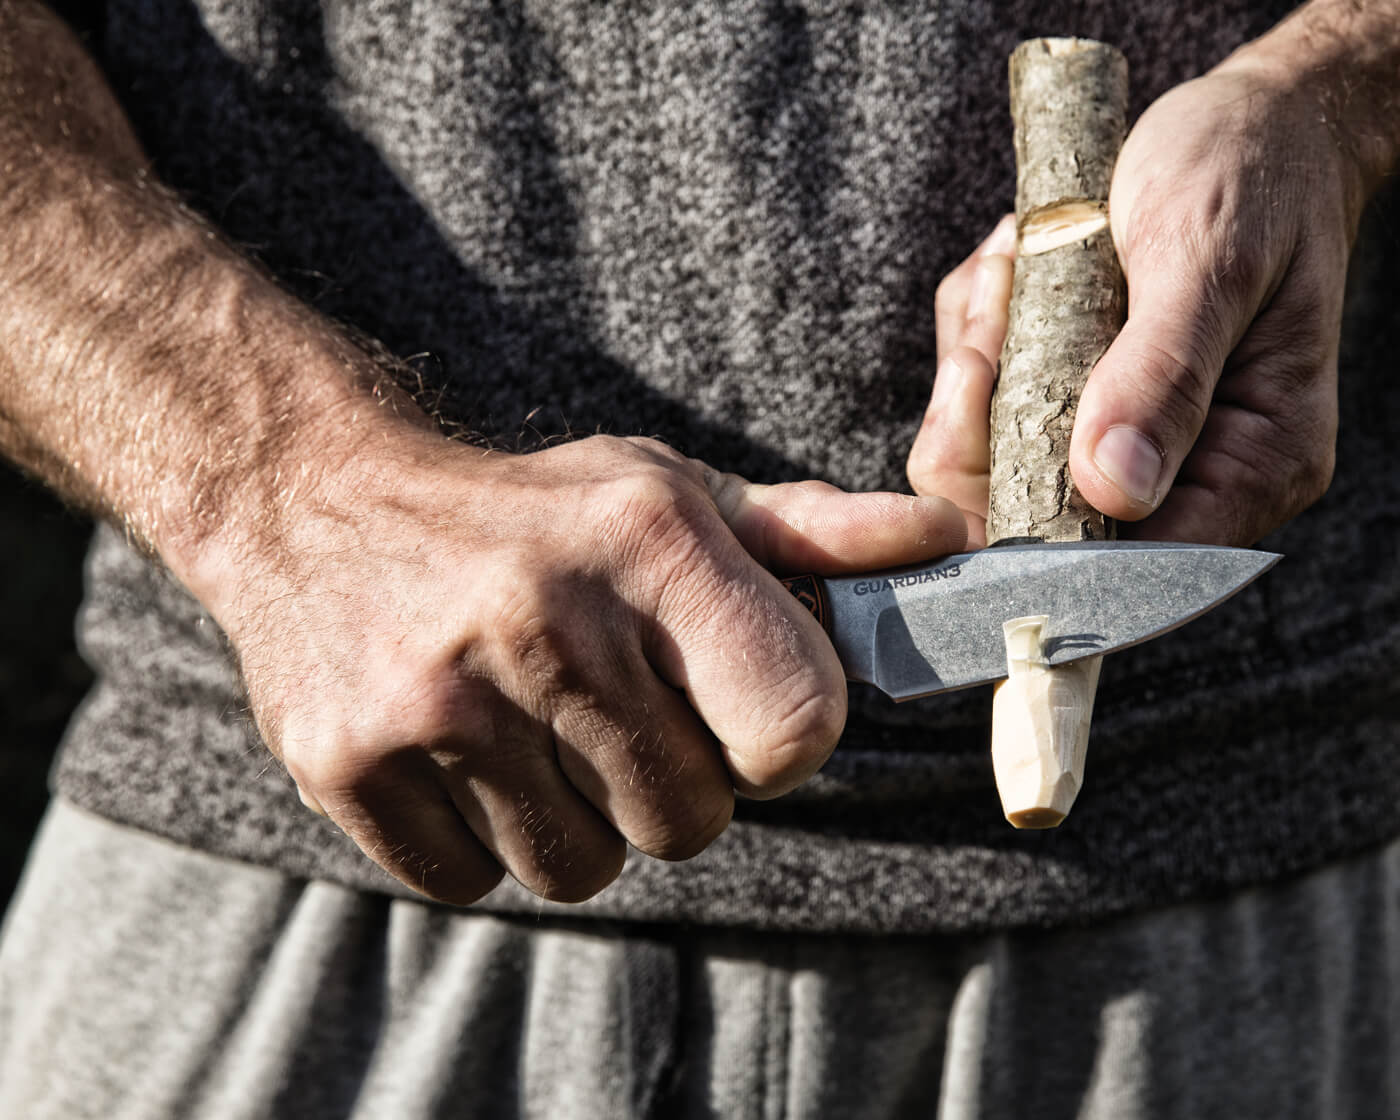 Man using Guardian3 knife to carve wood